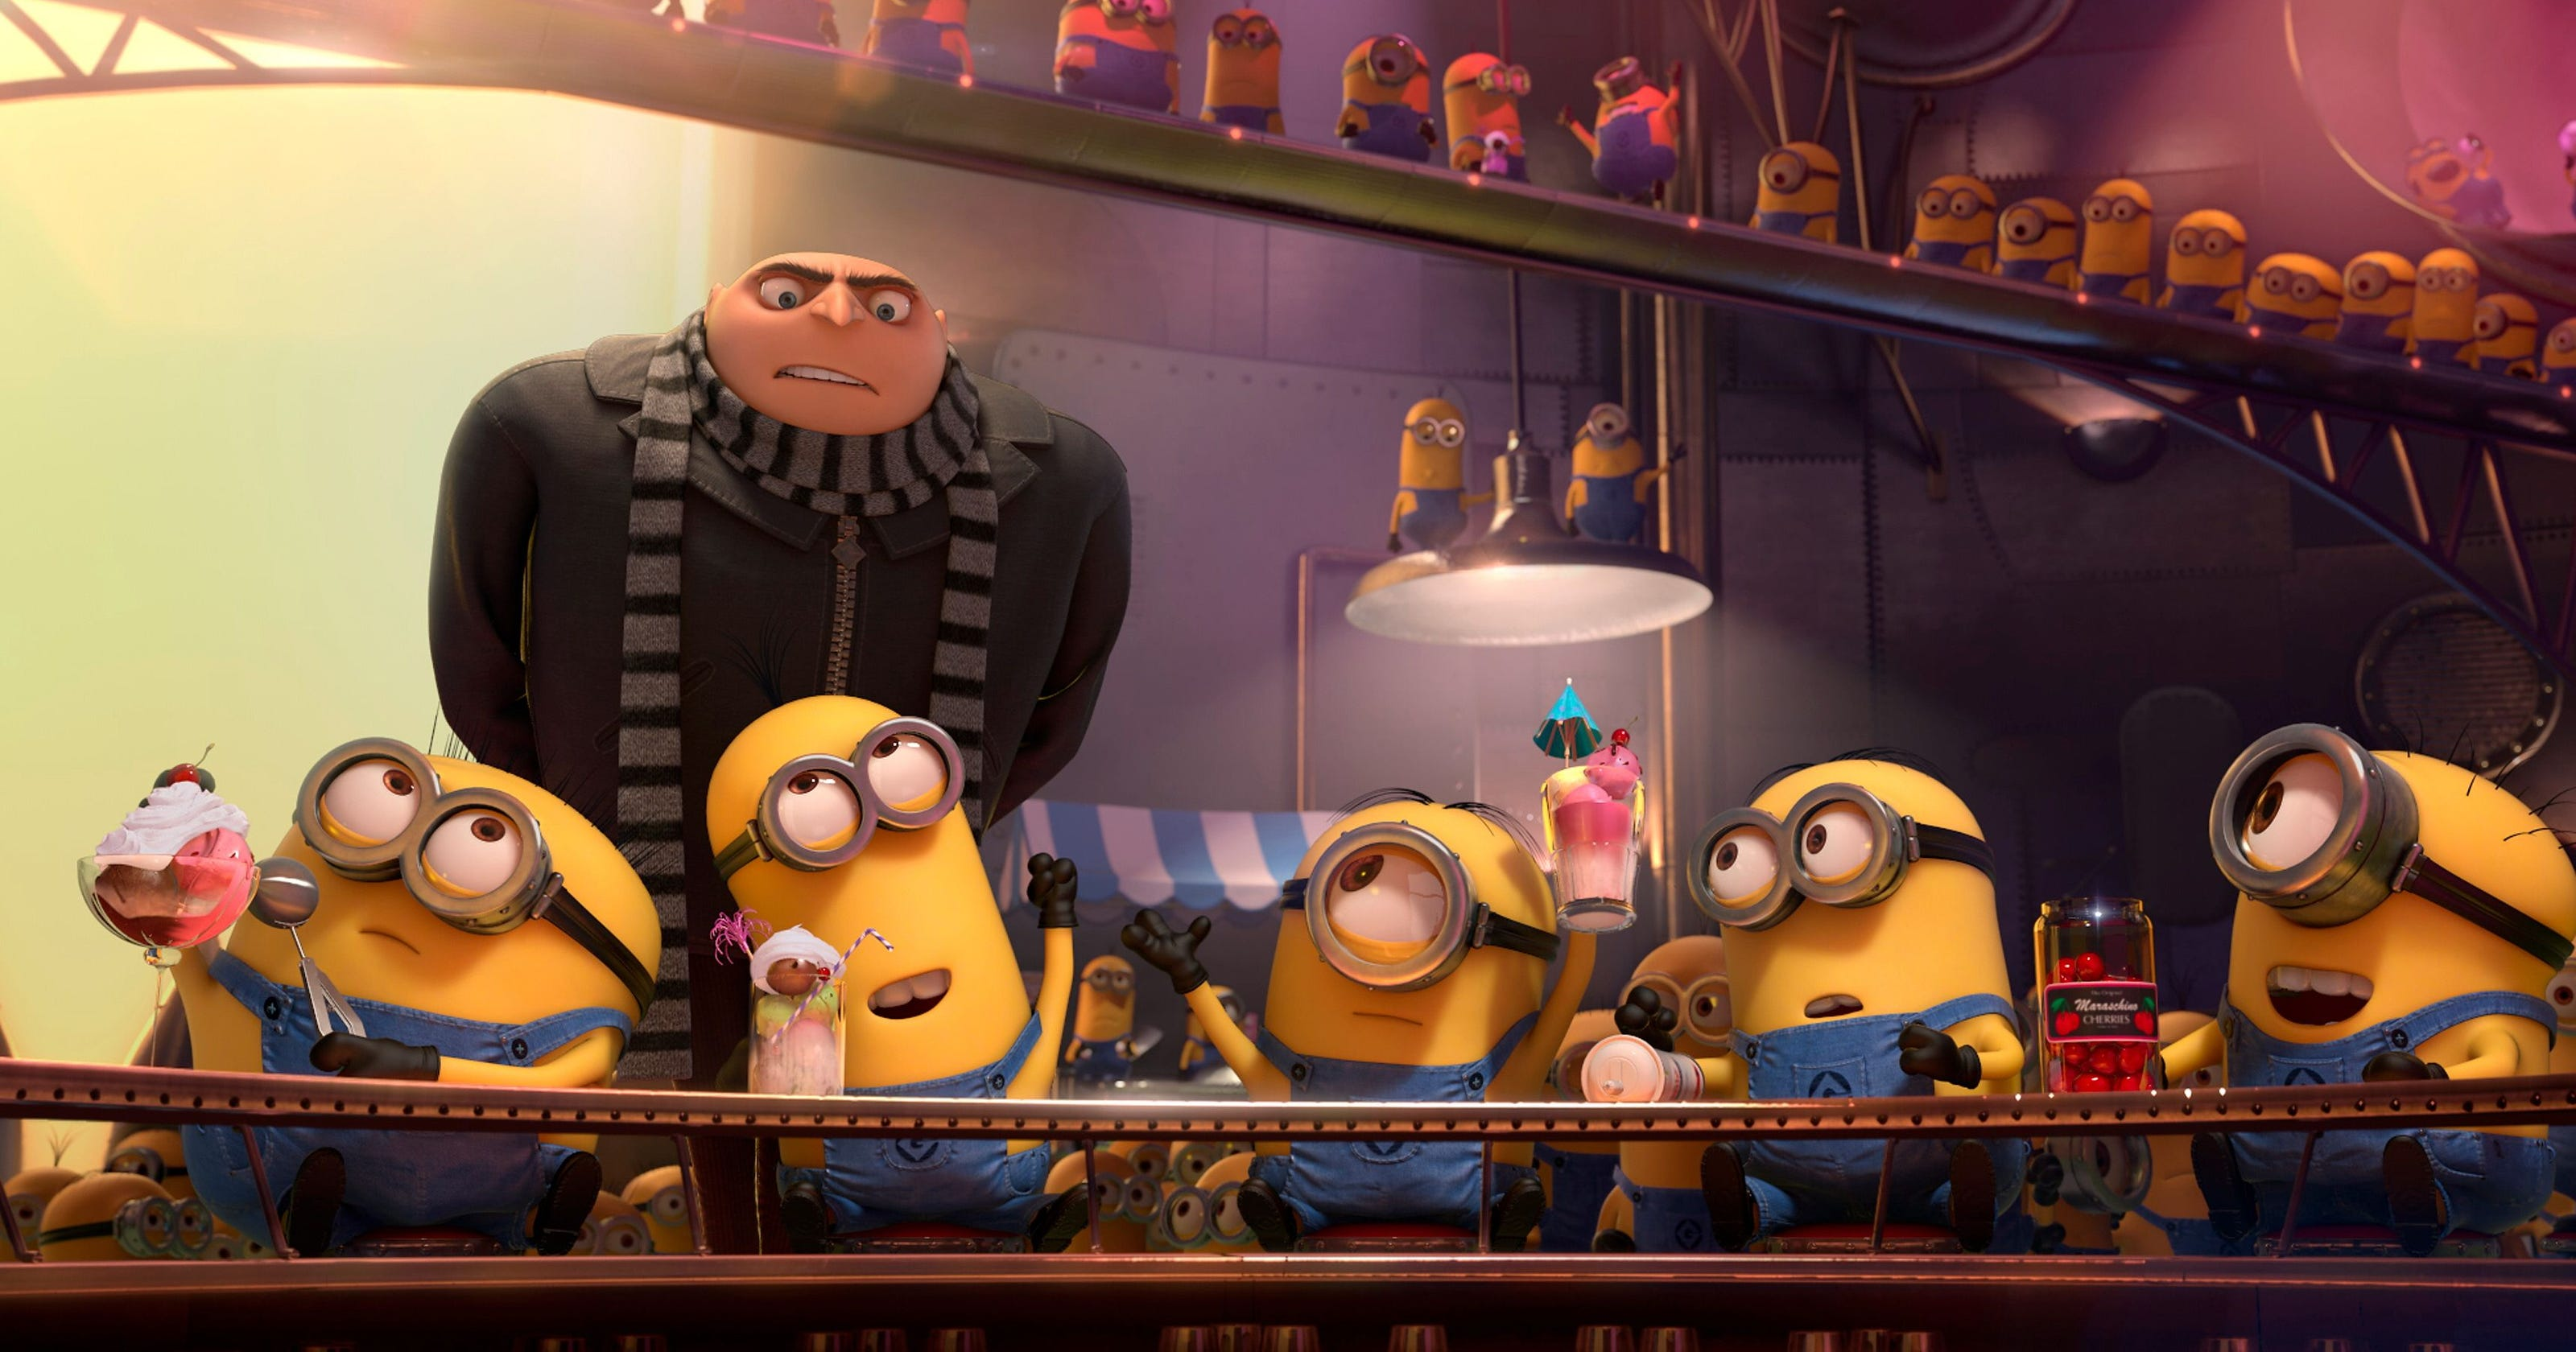 Gru (voiced by Steve Carell) and the Minions - back for more in Despicable Me 2 (2013)